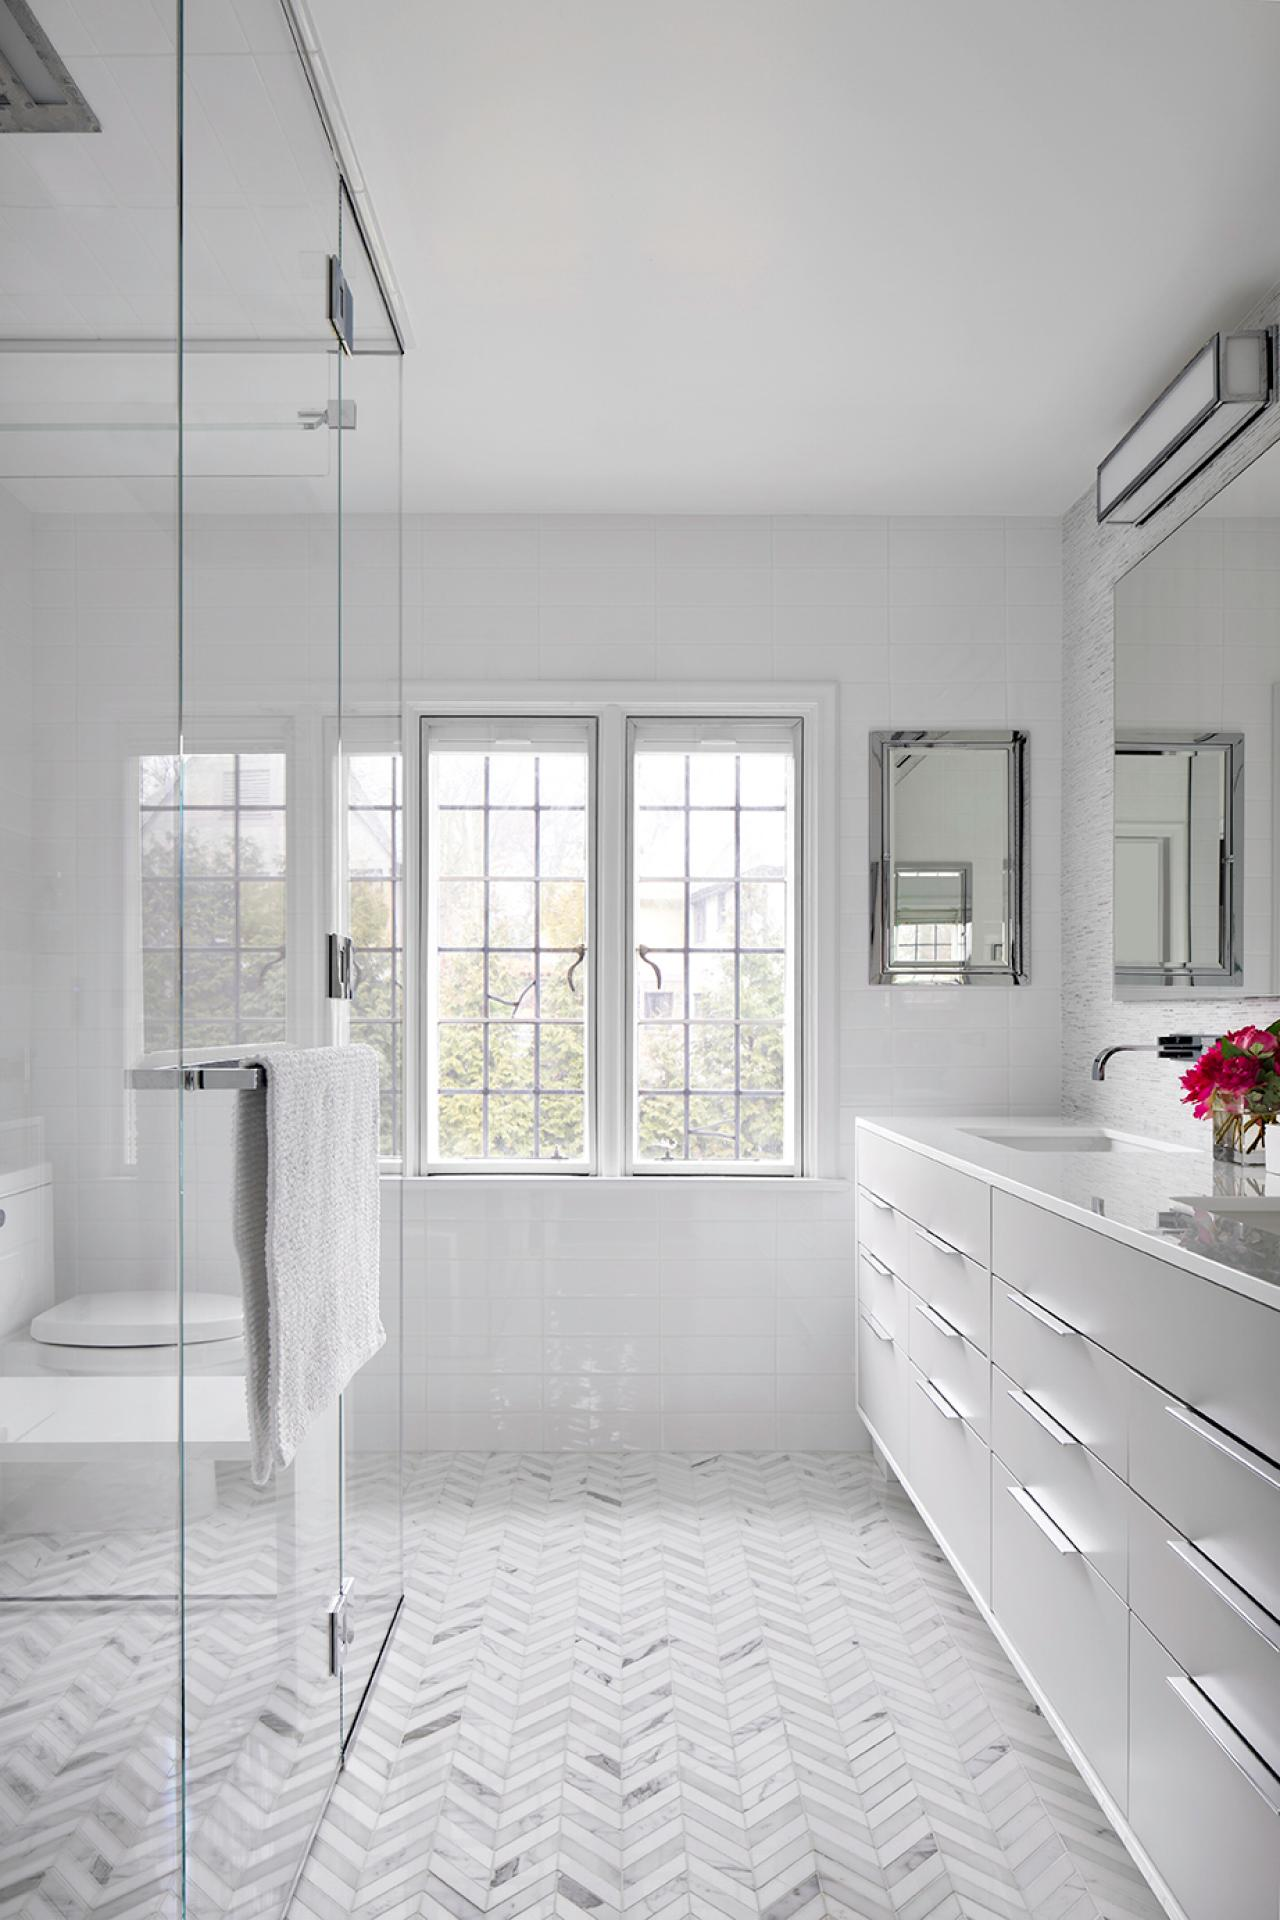 Claire-Paquin_Harcourt-bathroom.jpg.rend.hgtvcom.1280.1920